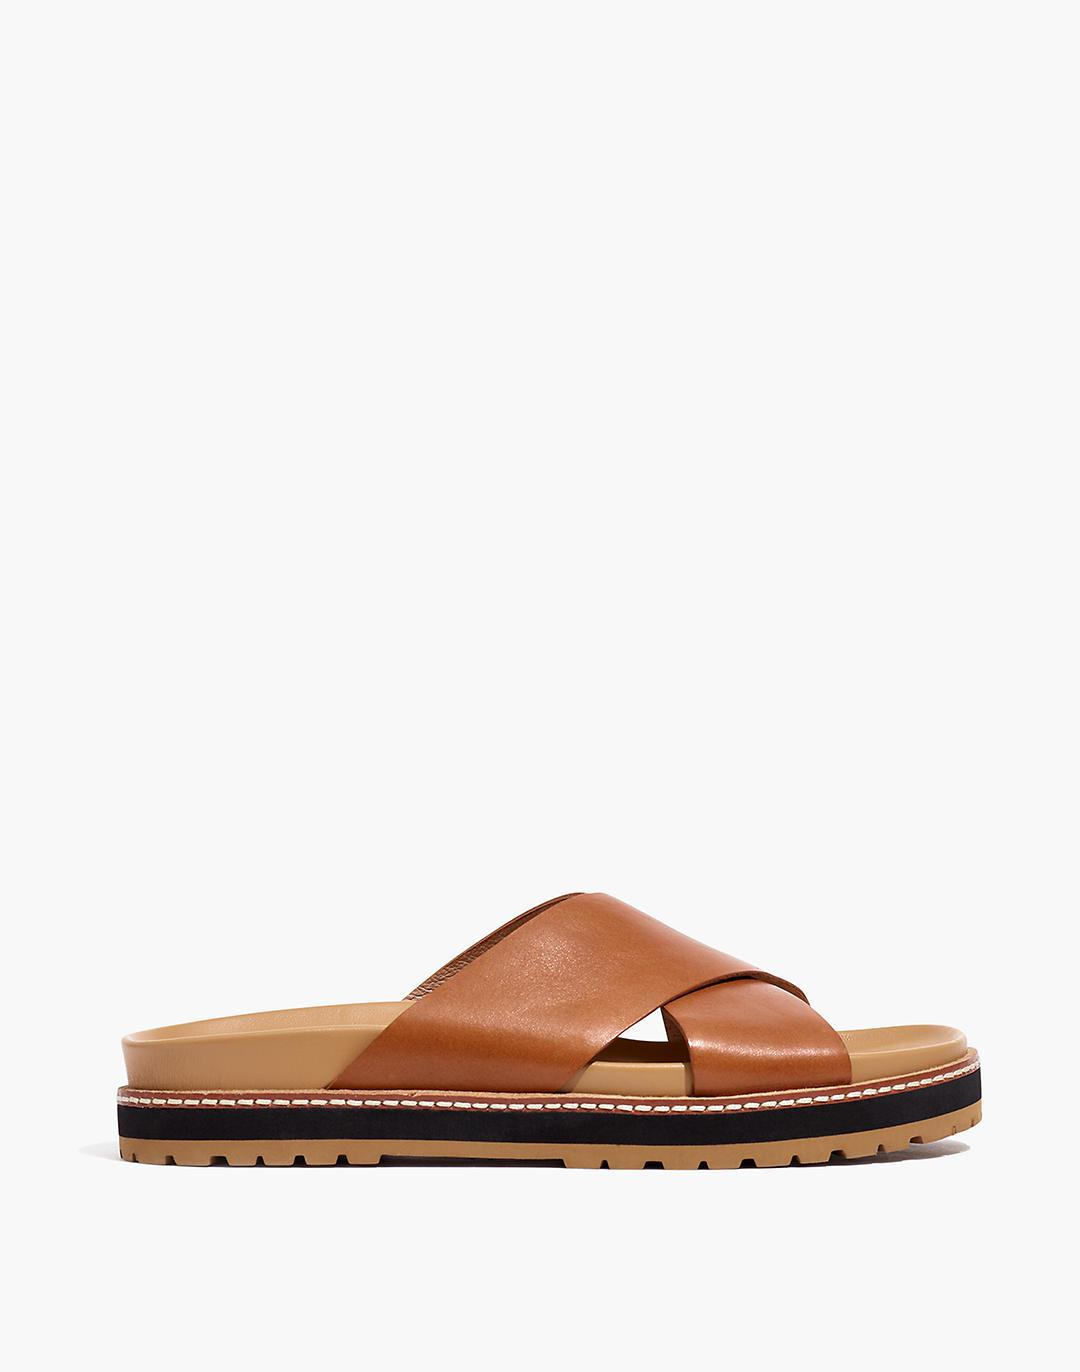 The Dayna Lugsole Slide Sandal in Leather 1